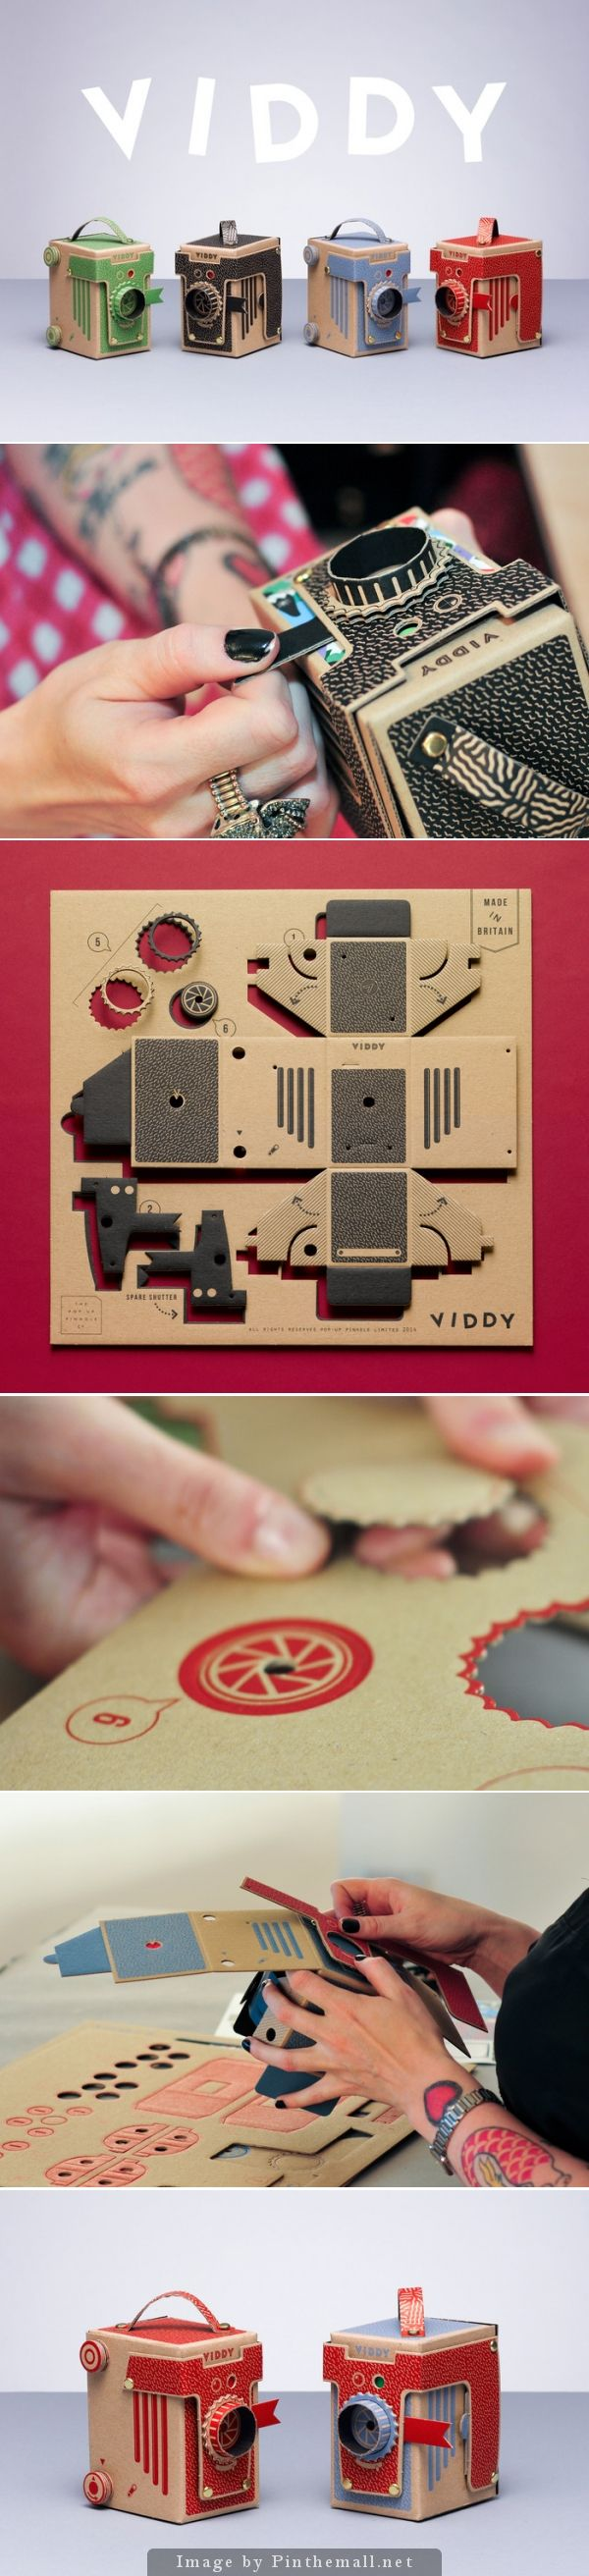 https://www.kickstarter.com/projects/kellyangood/viddy-the-worlds-cutest-diy-pinhole-camera-kit Viddy